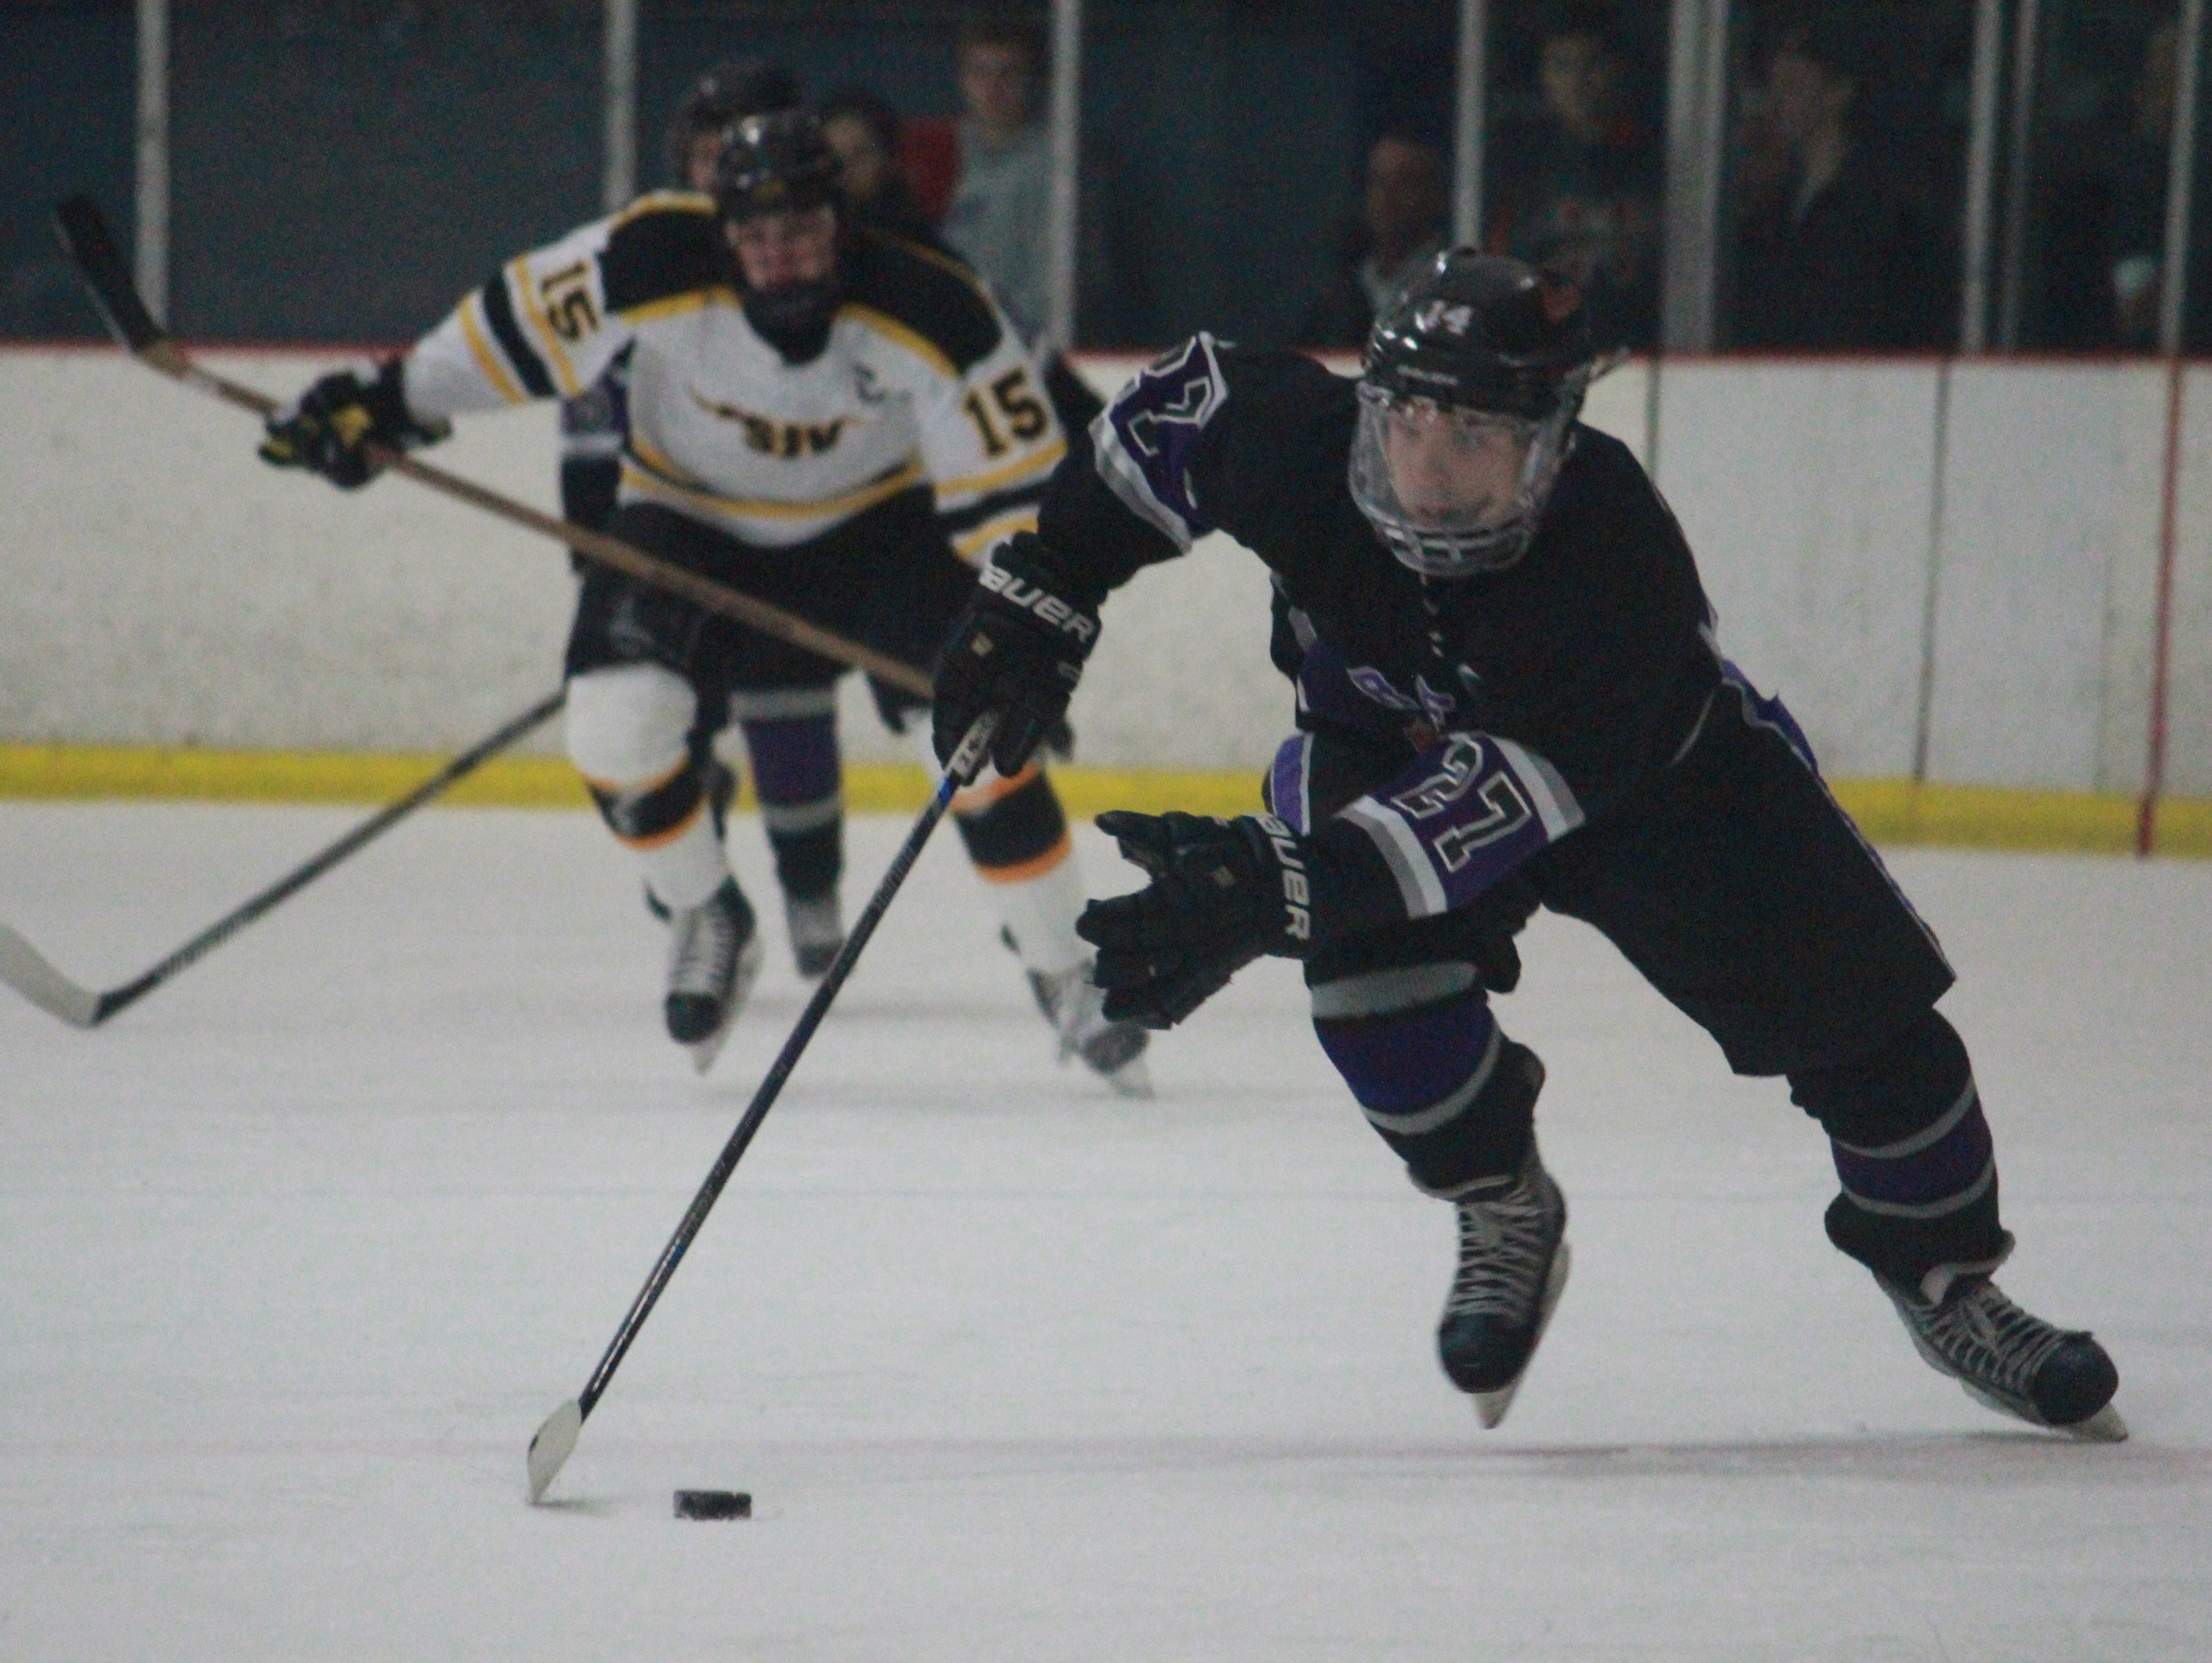 Brendan Ban (27) helped lead Rumson past Vianney on Tuesday in Wall.